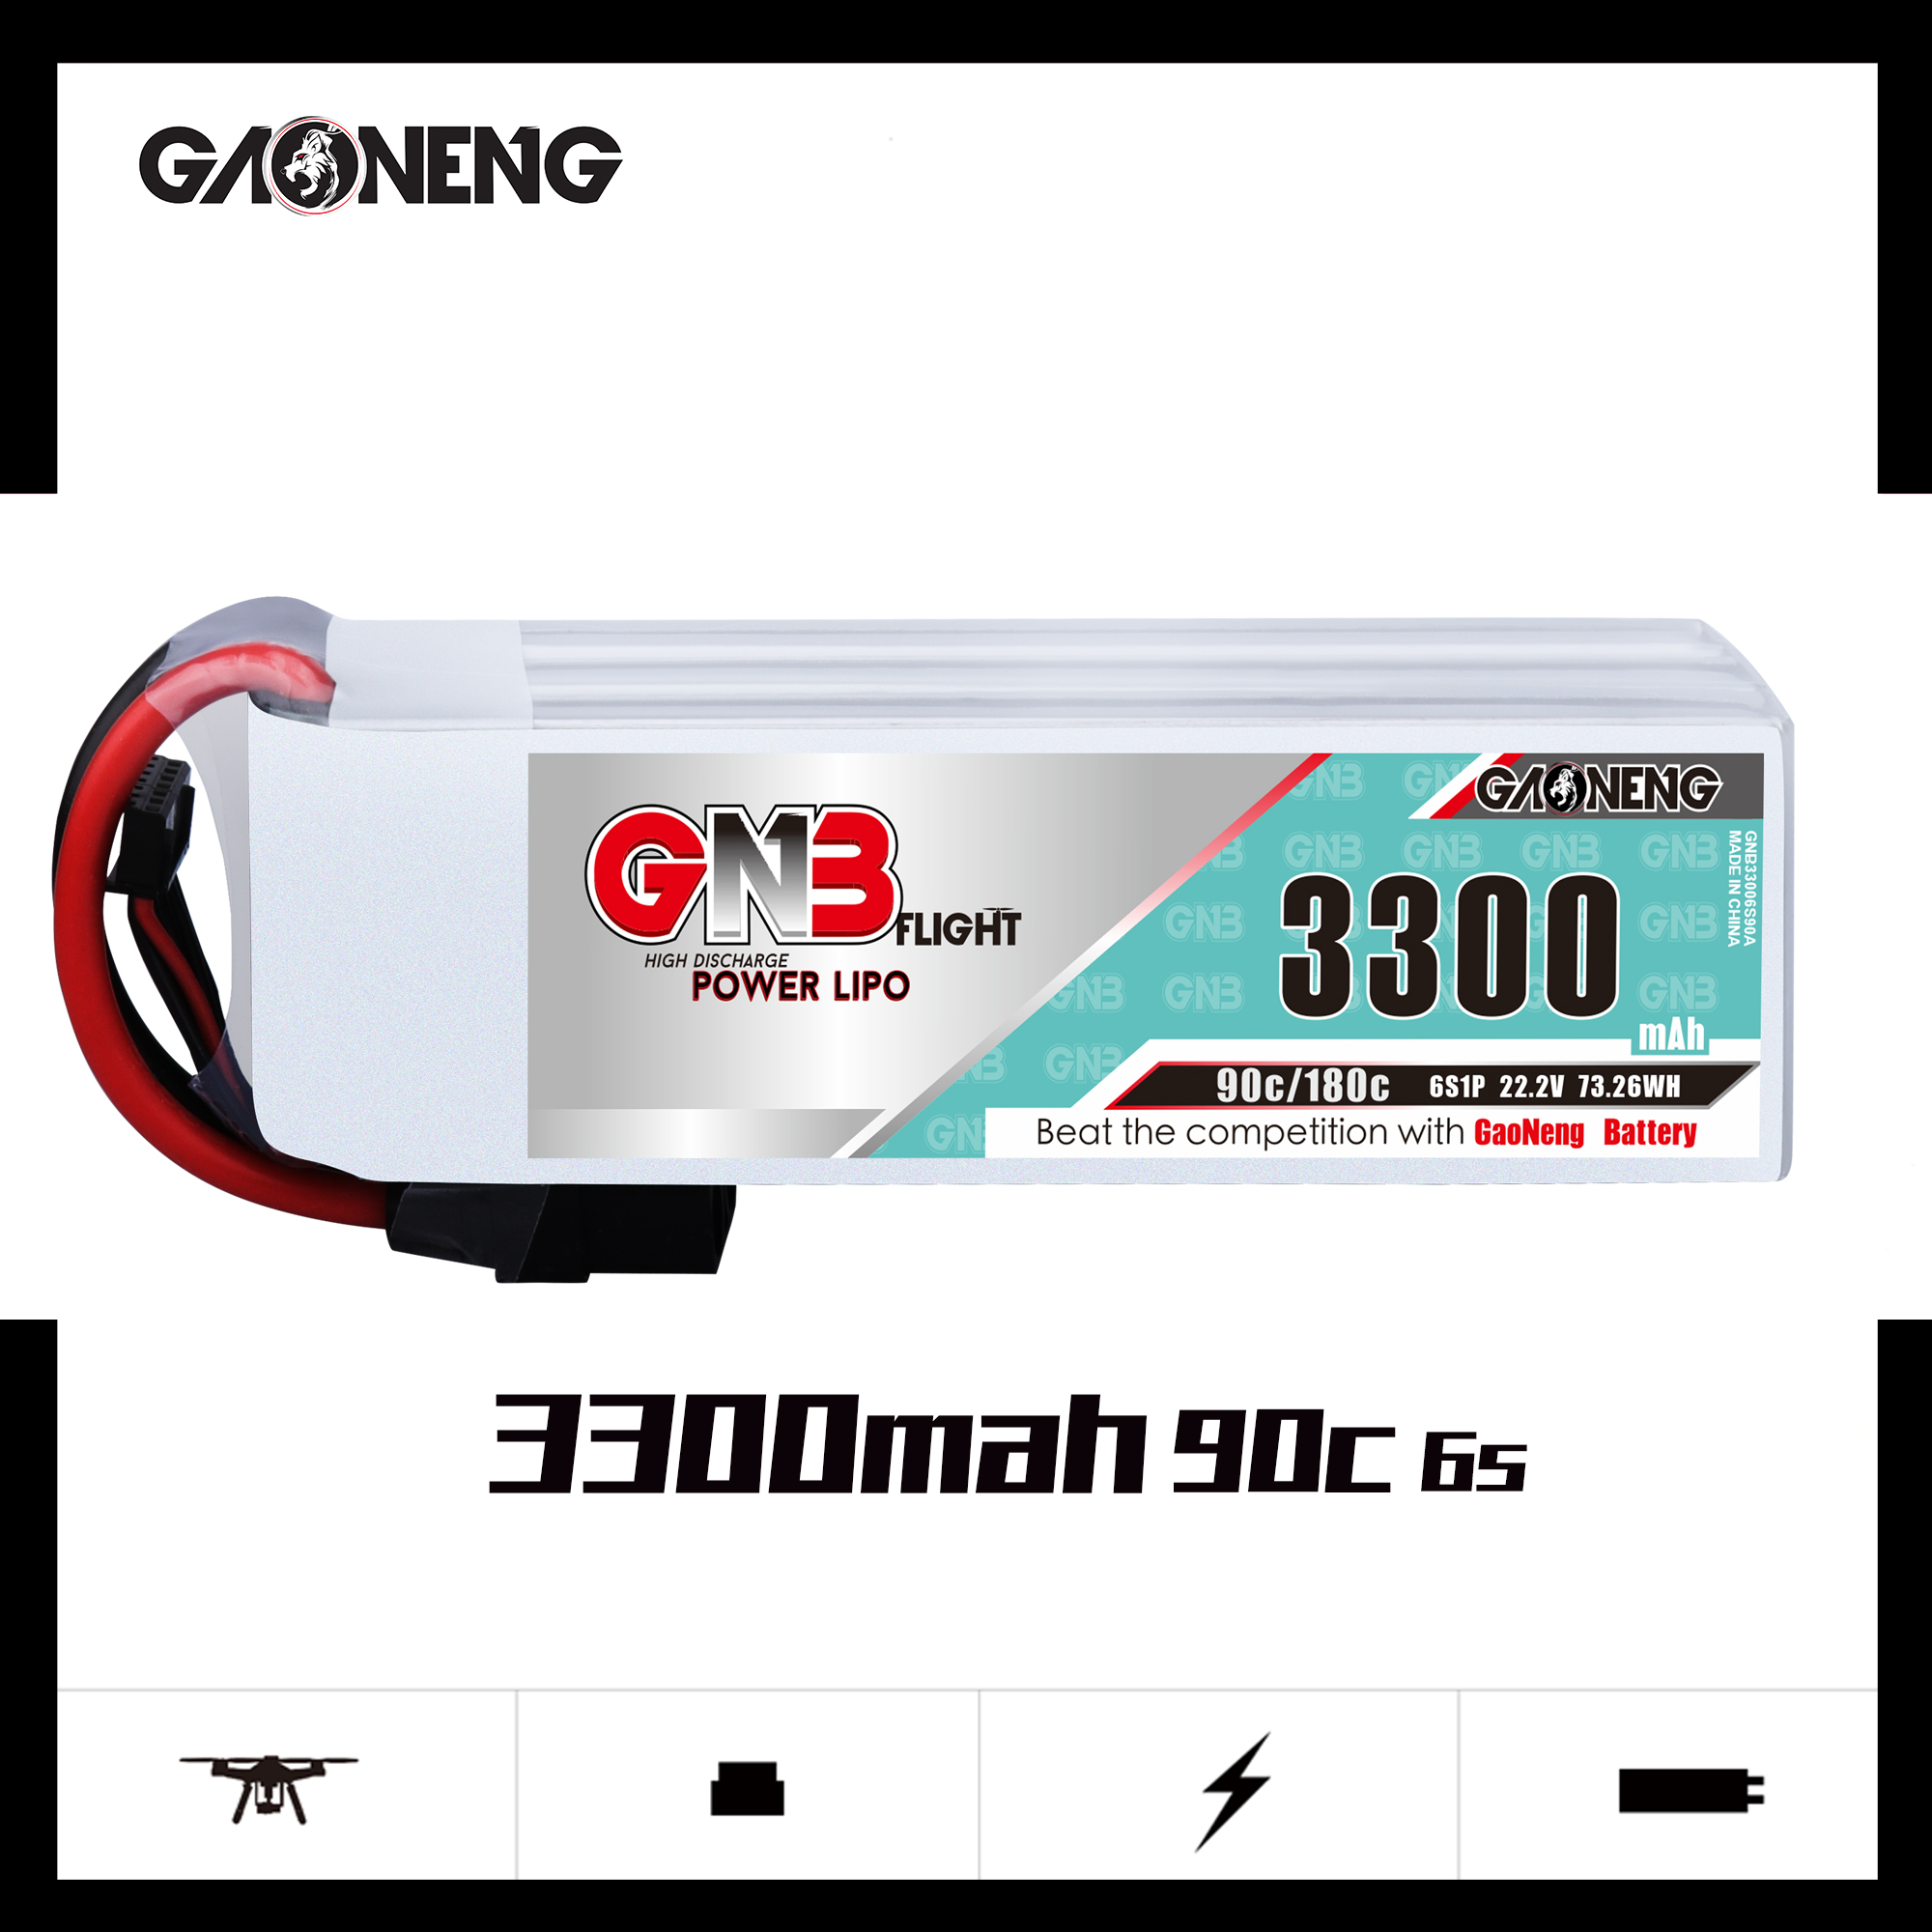 Gaoneng GNB 3300mAh 6S 22.2V 90C XT60 XT90 XT150 T Plug For RC FPV Racing Drone Quadcopter Airplane RC Car Helicopter